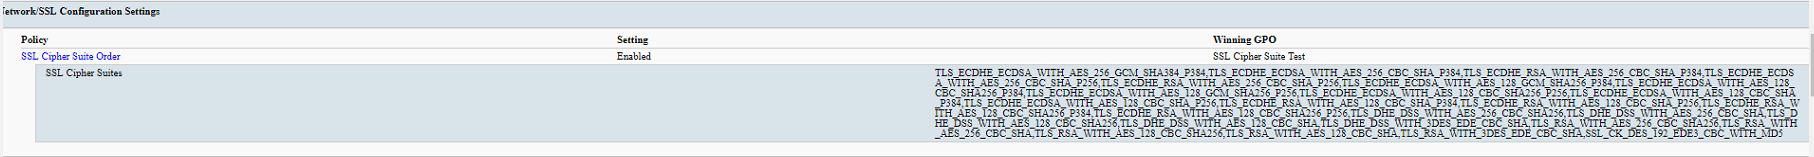 SSL Cipher Suite Order GPO not taking affect